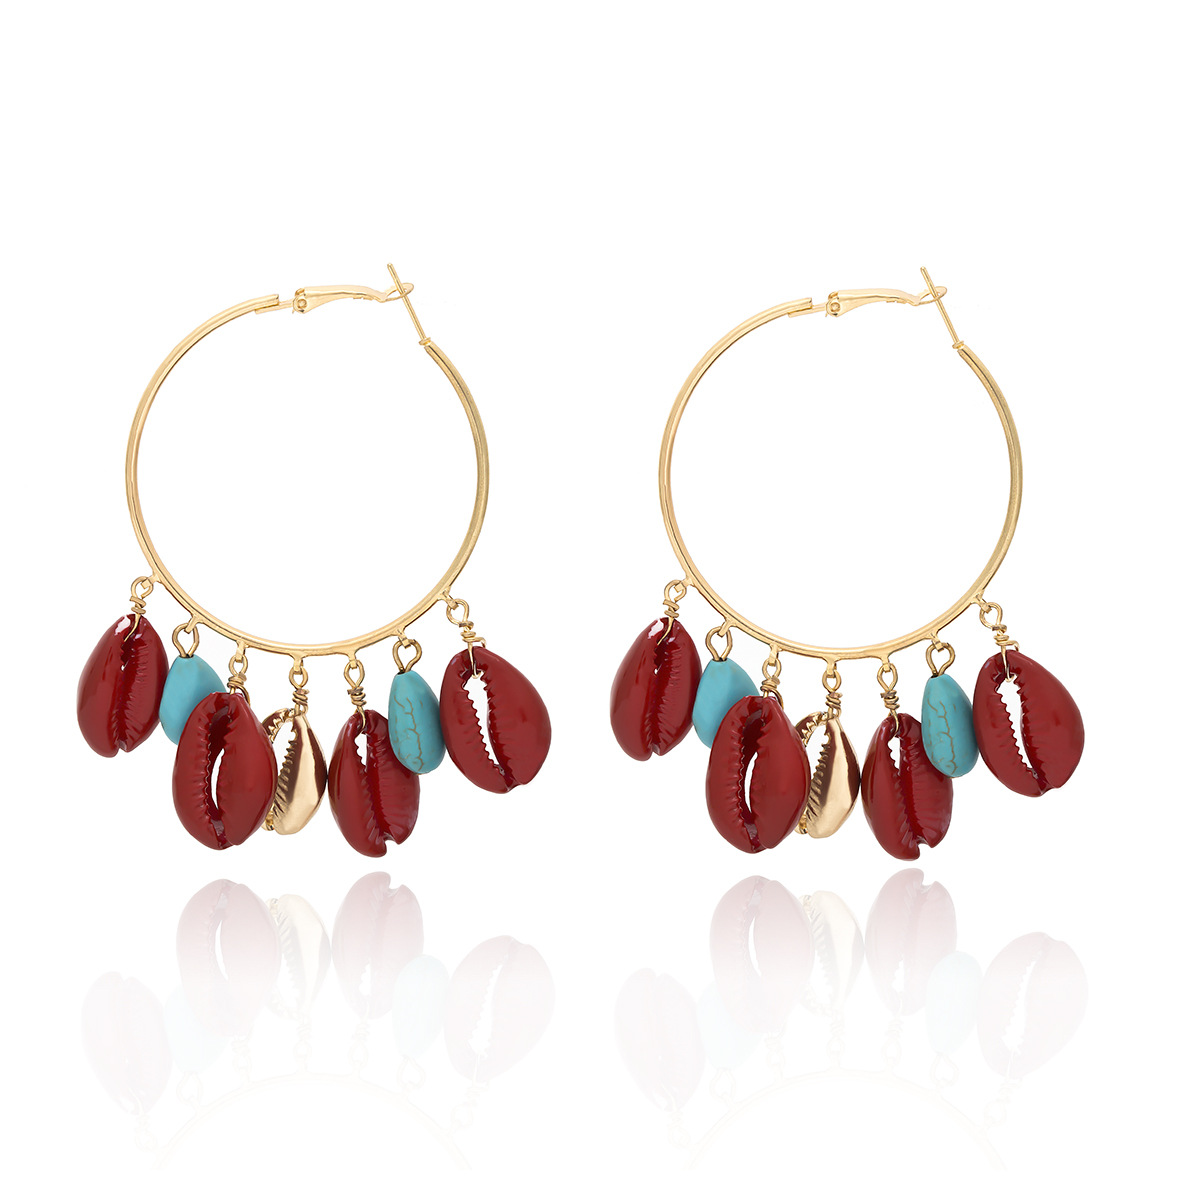 WENZHE Big Hoop Turquoise Red Spray Paint Seashell Exaggerated Boho Earrings Featured Image